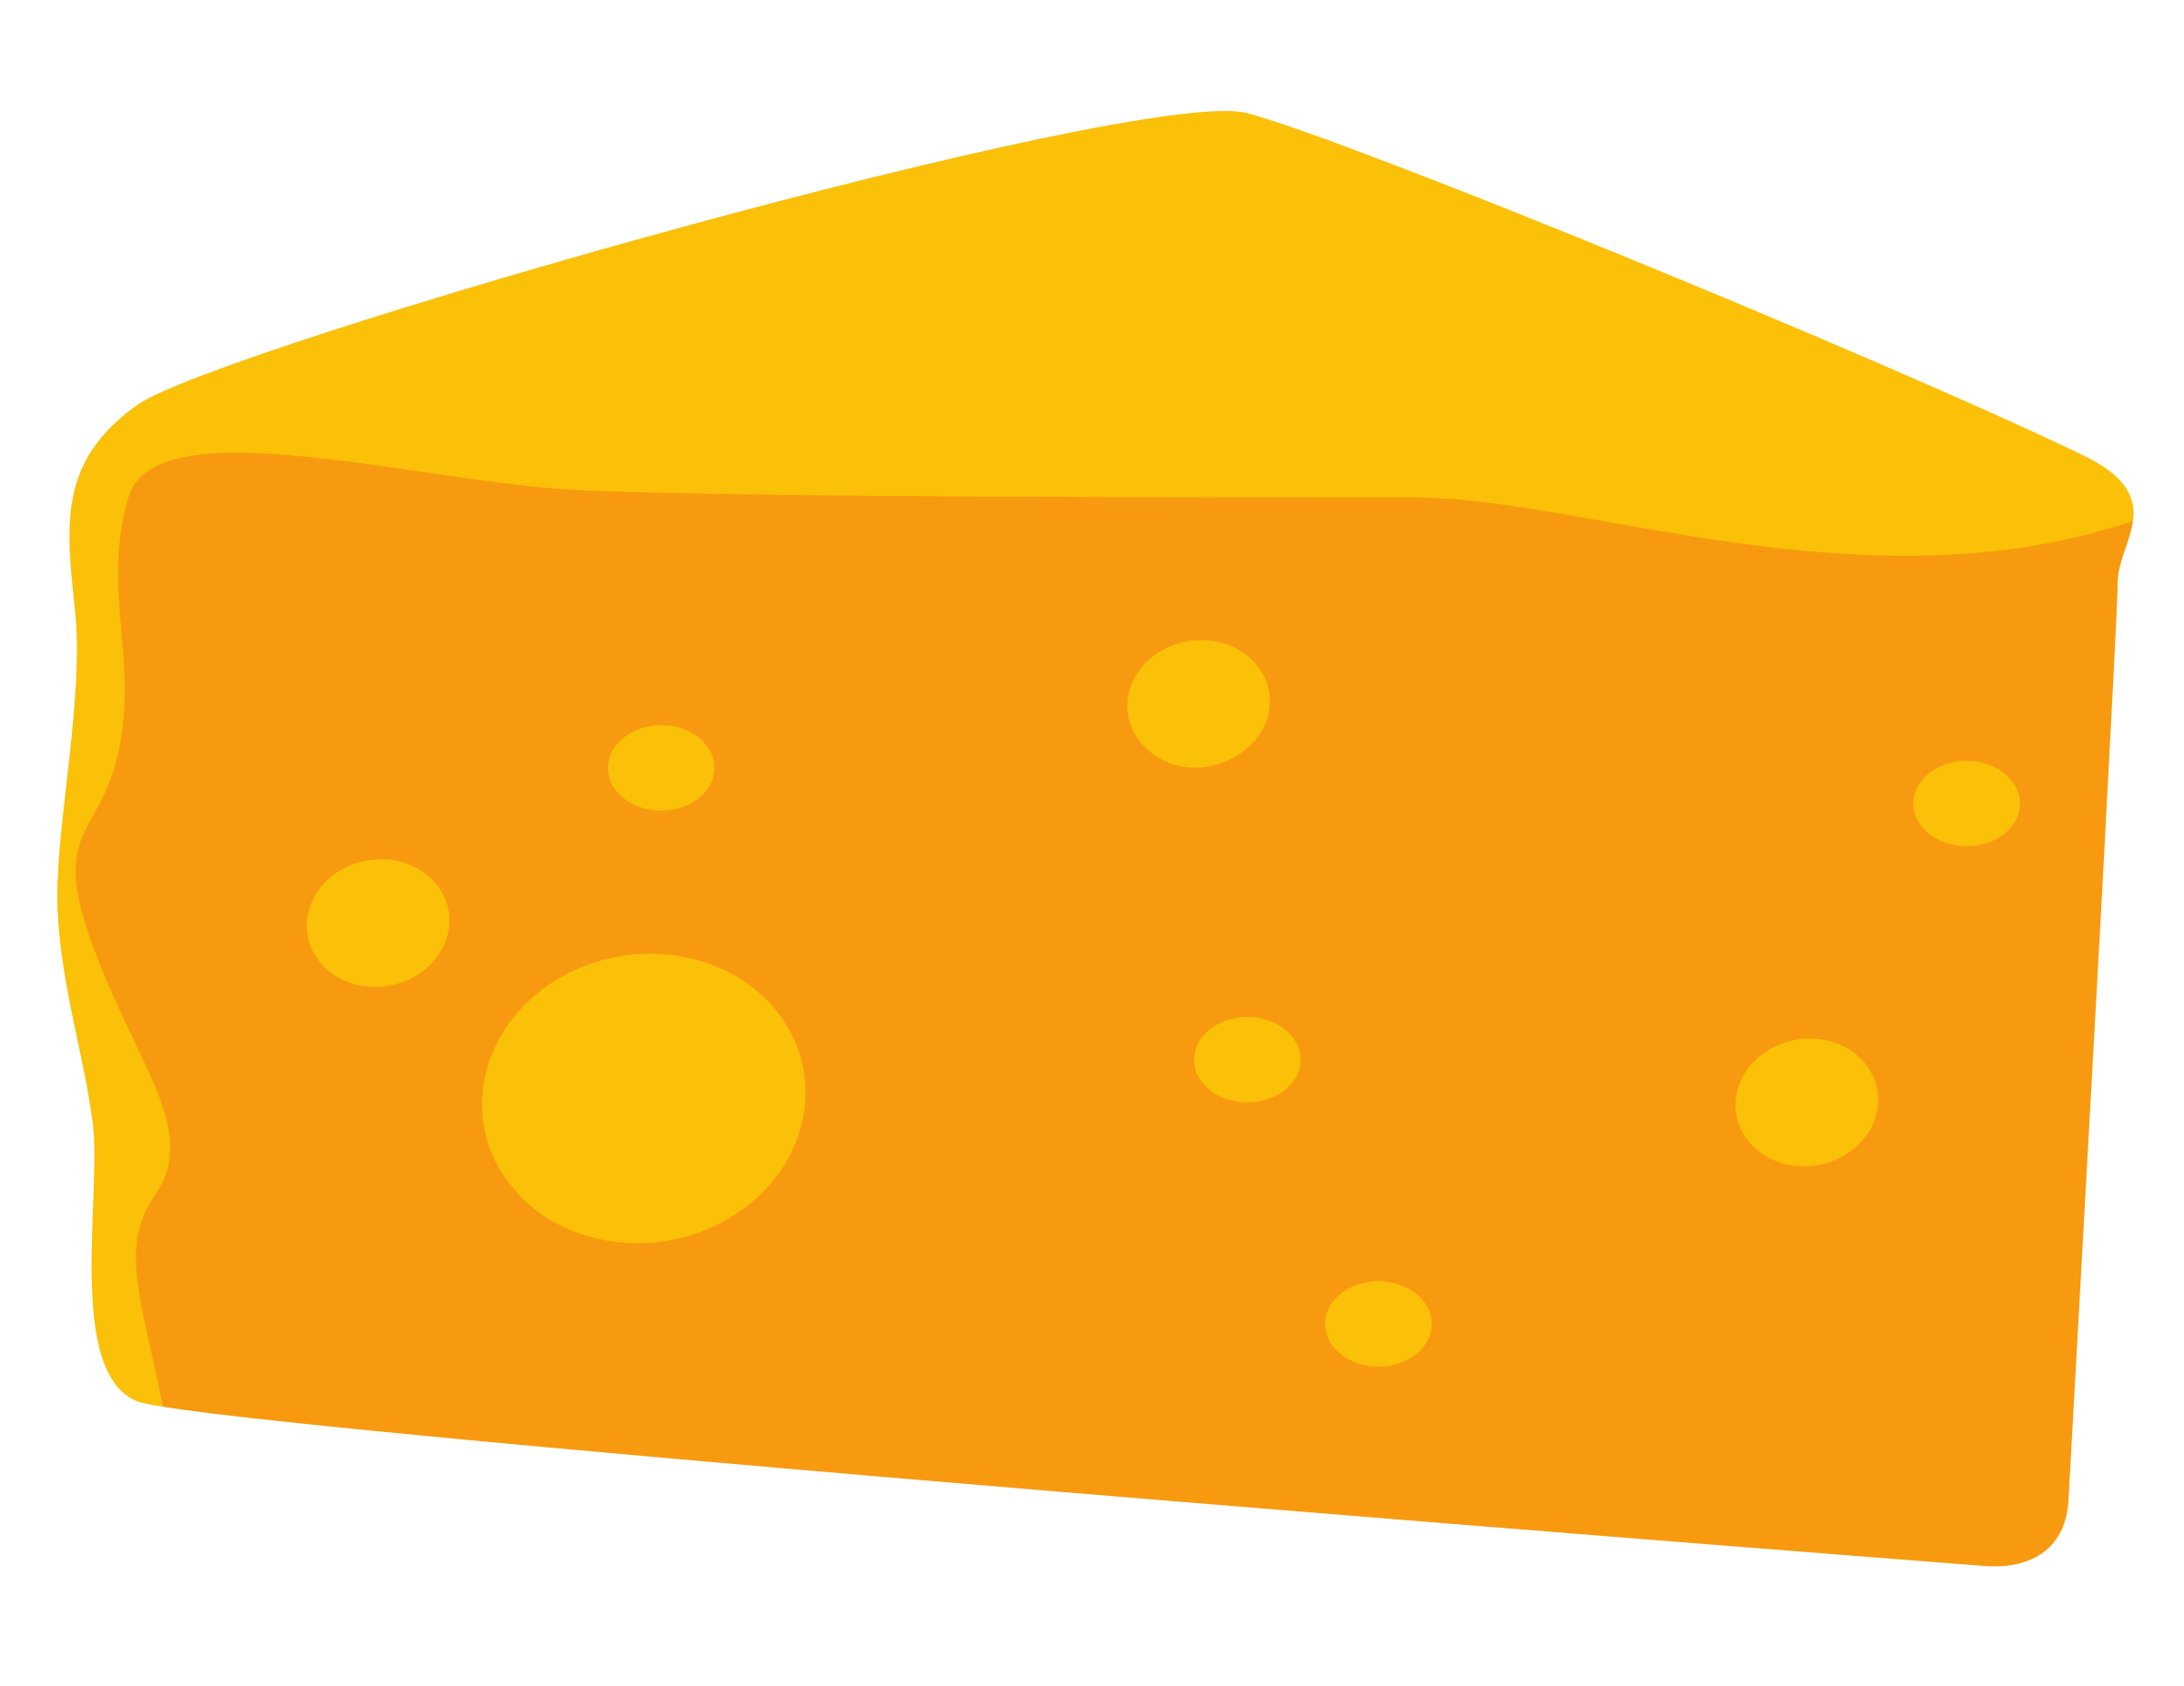 Cheese clipart cheddar. Slice big image png